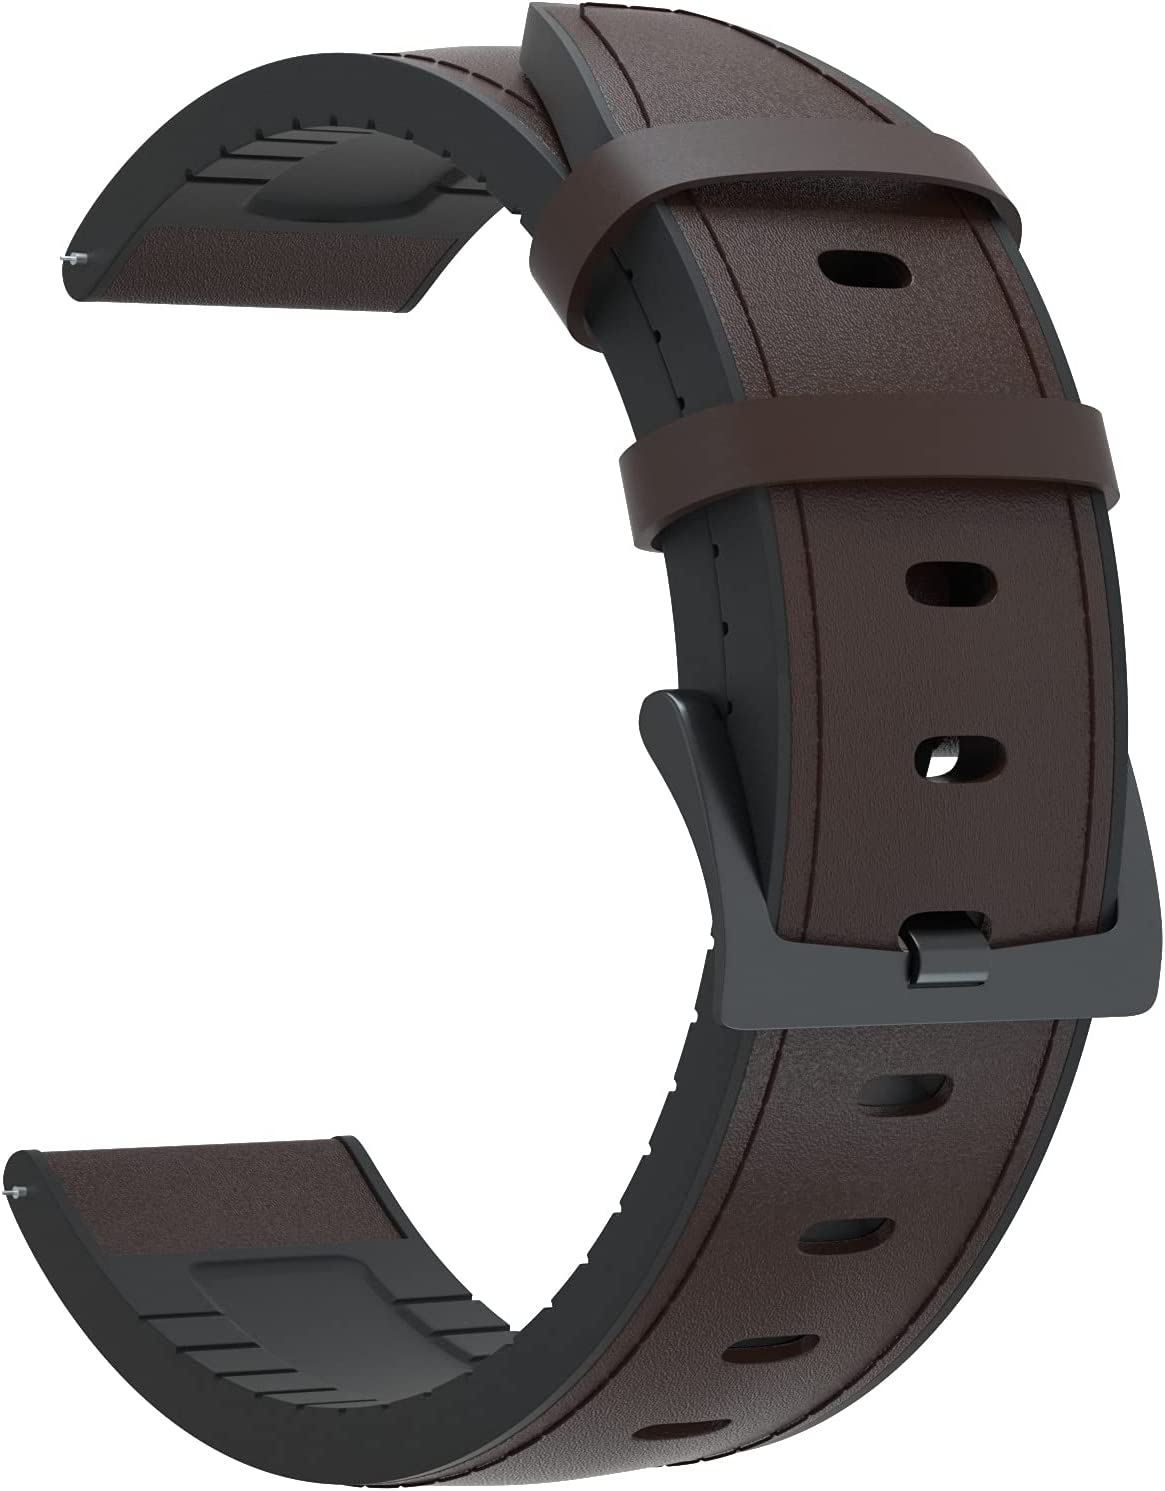 HQTUAN Brand new 22mm Watch Max 78% OFF Strap For Samsung galaxy Genuine 46mm Le watch